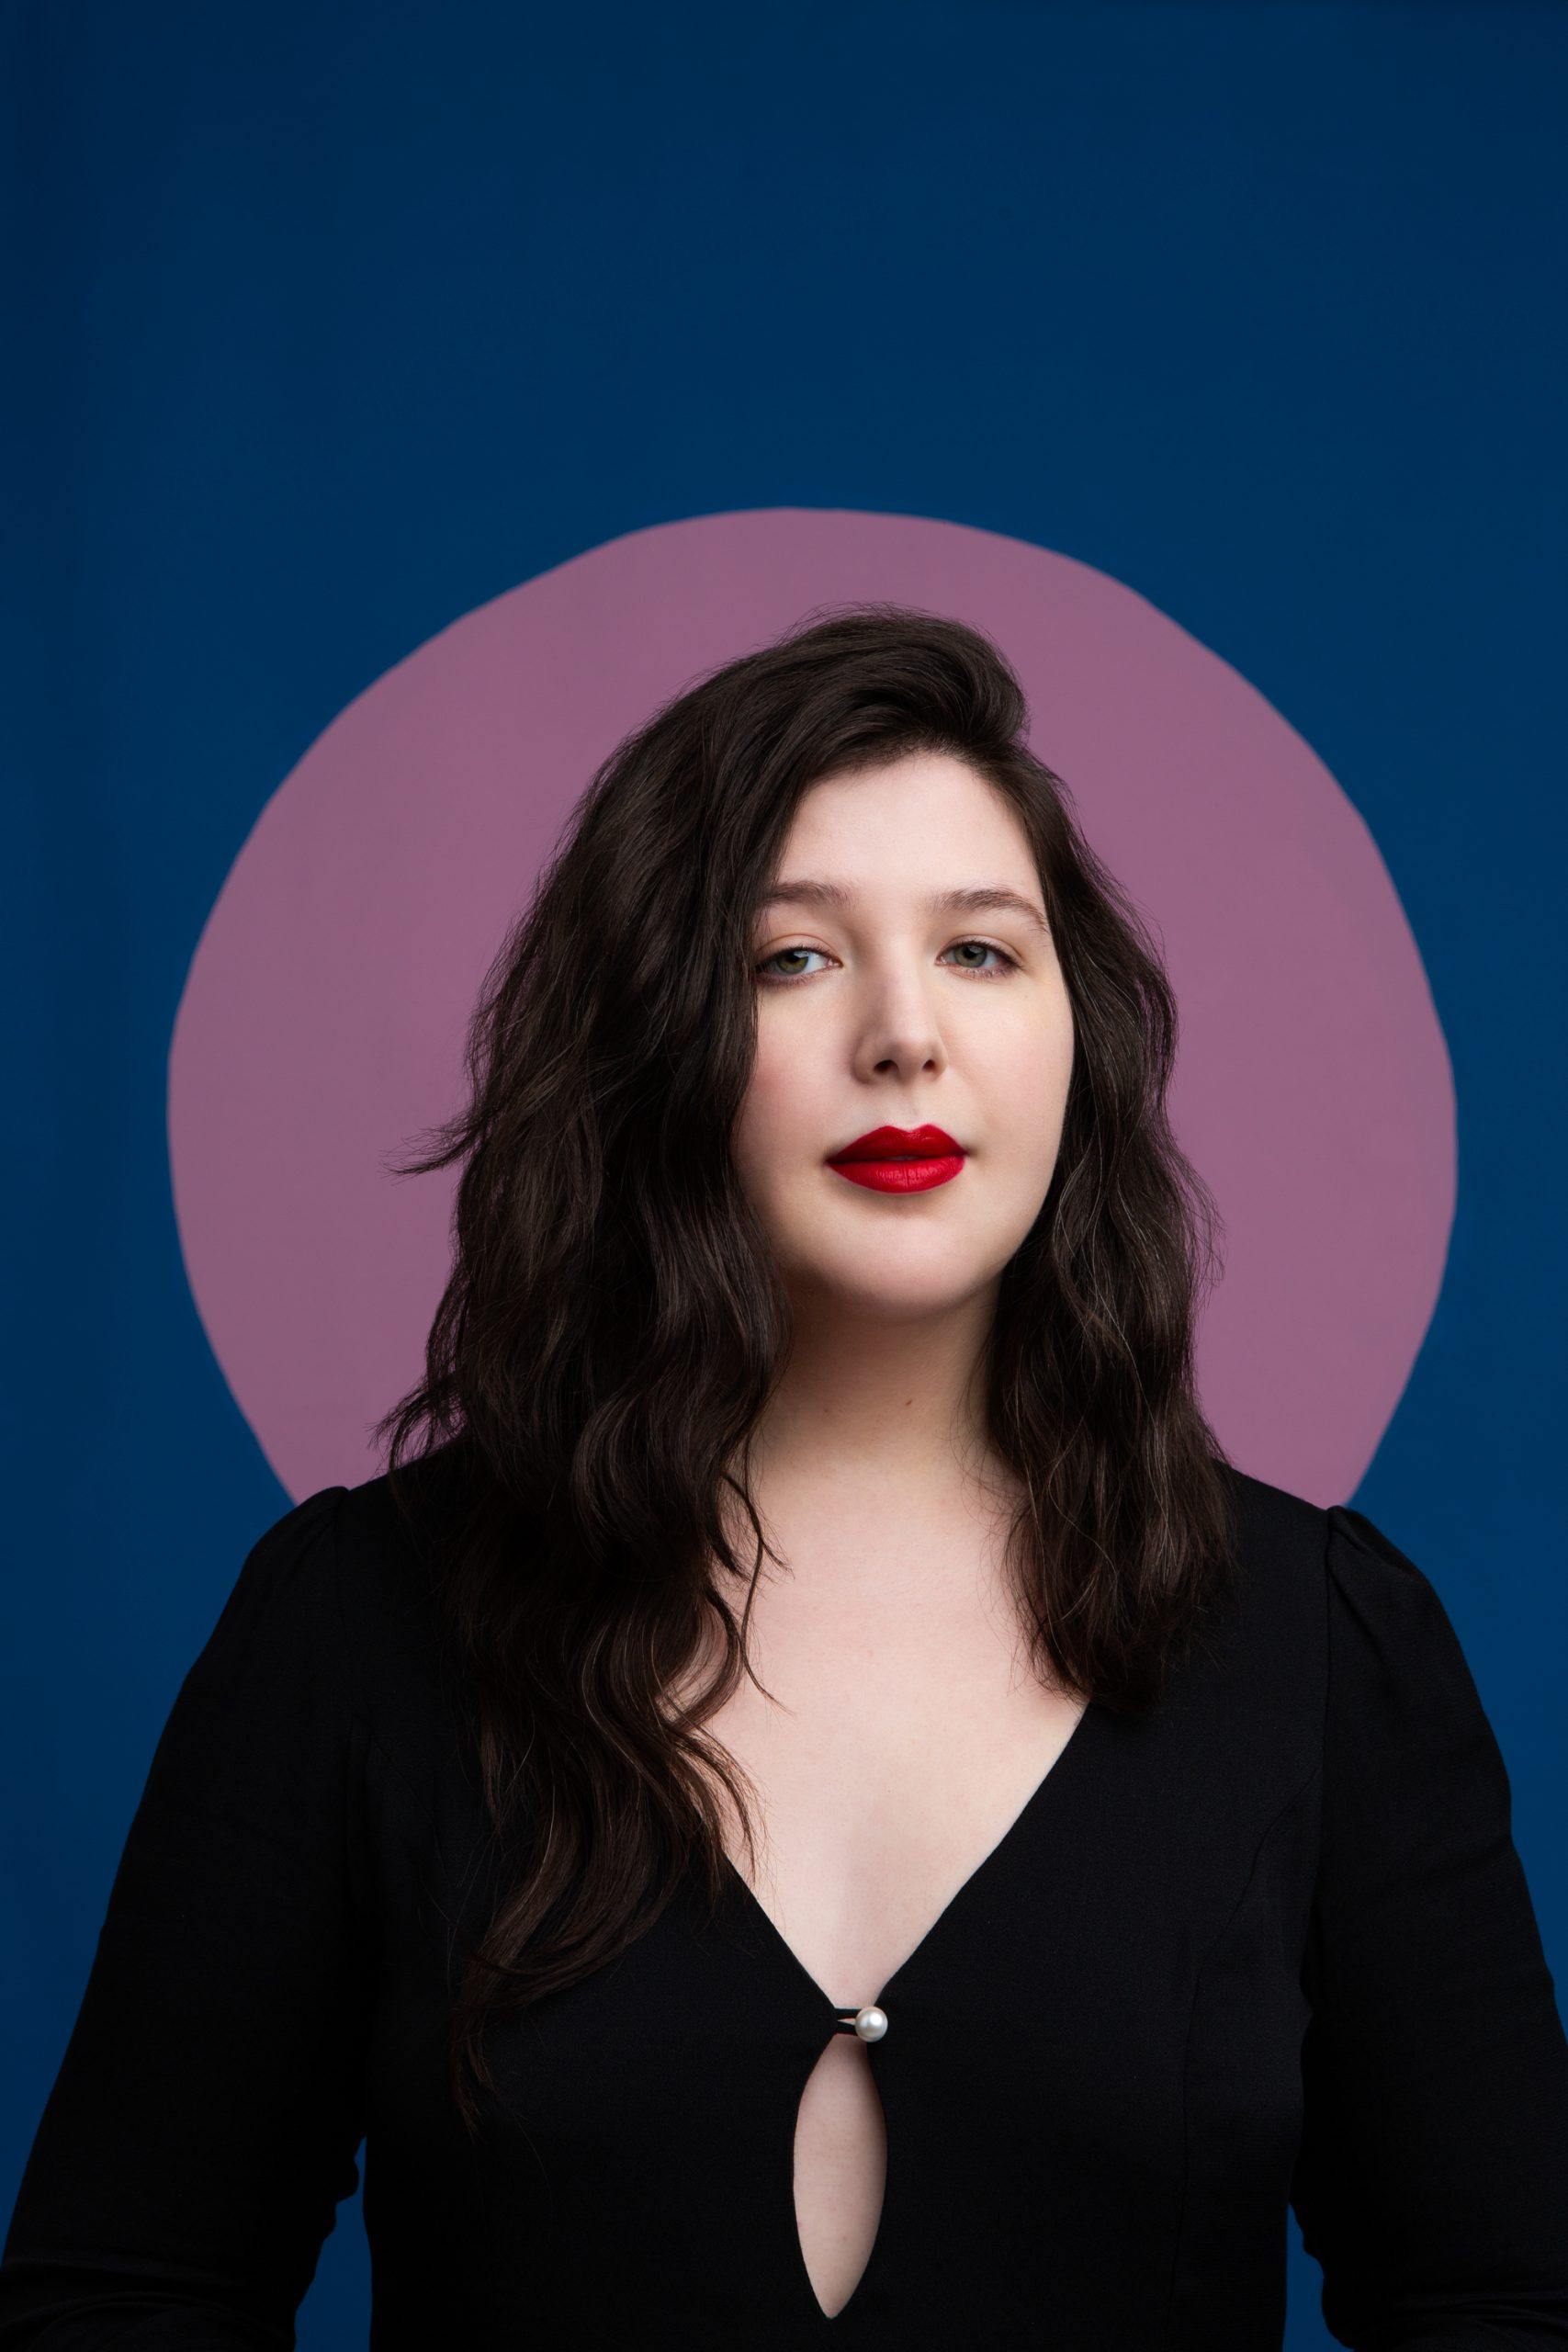 Musician Lucy Dacus